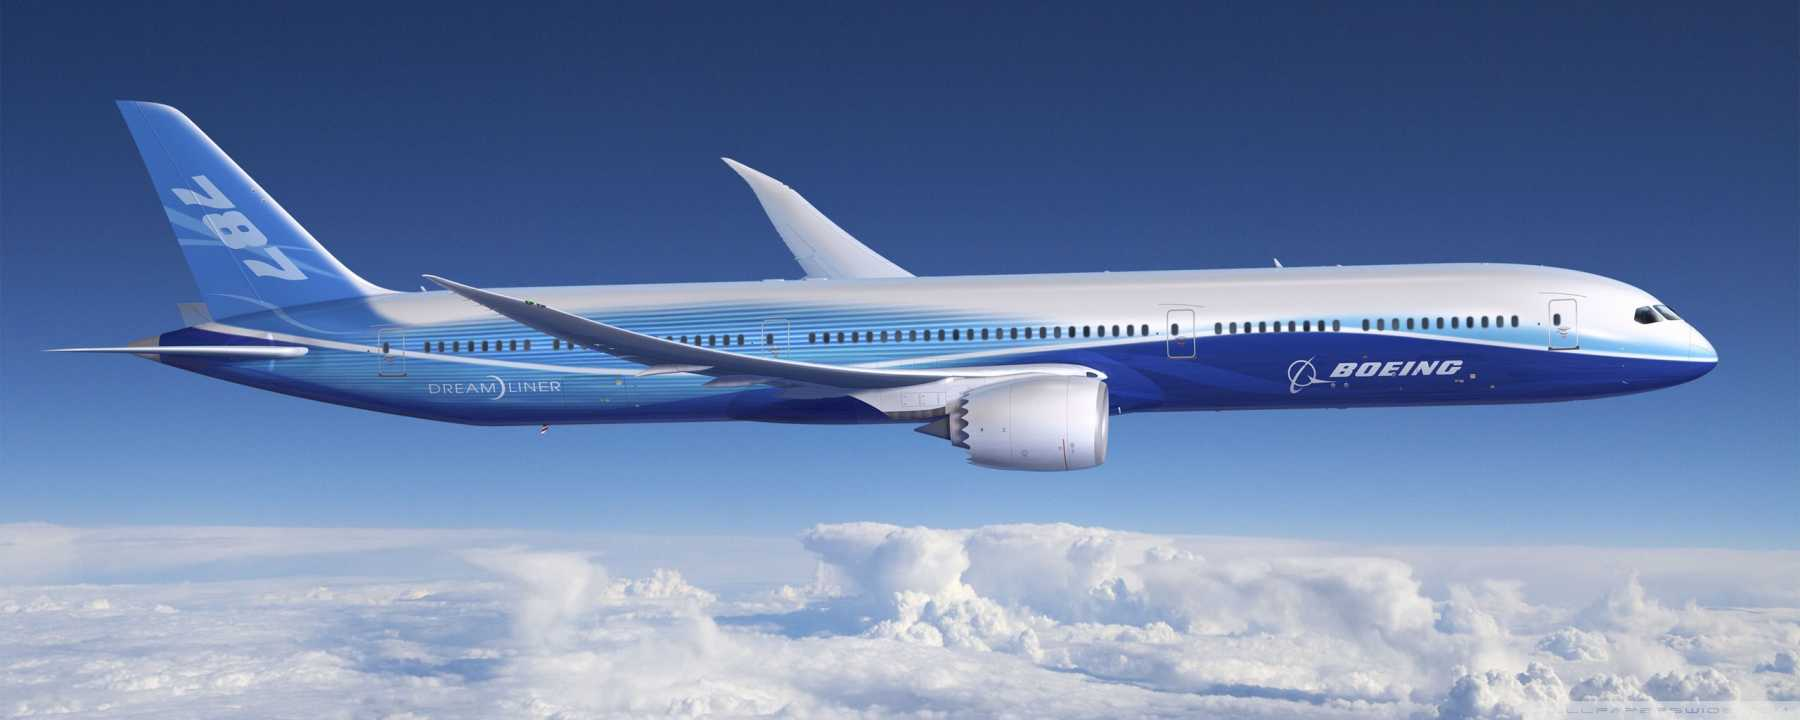 Boeing 787 Dreamliner Makes Emergency Landing At Glasgow Airport | Boeing 787 Dreamliner